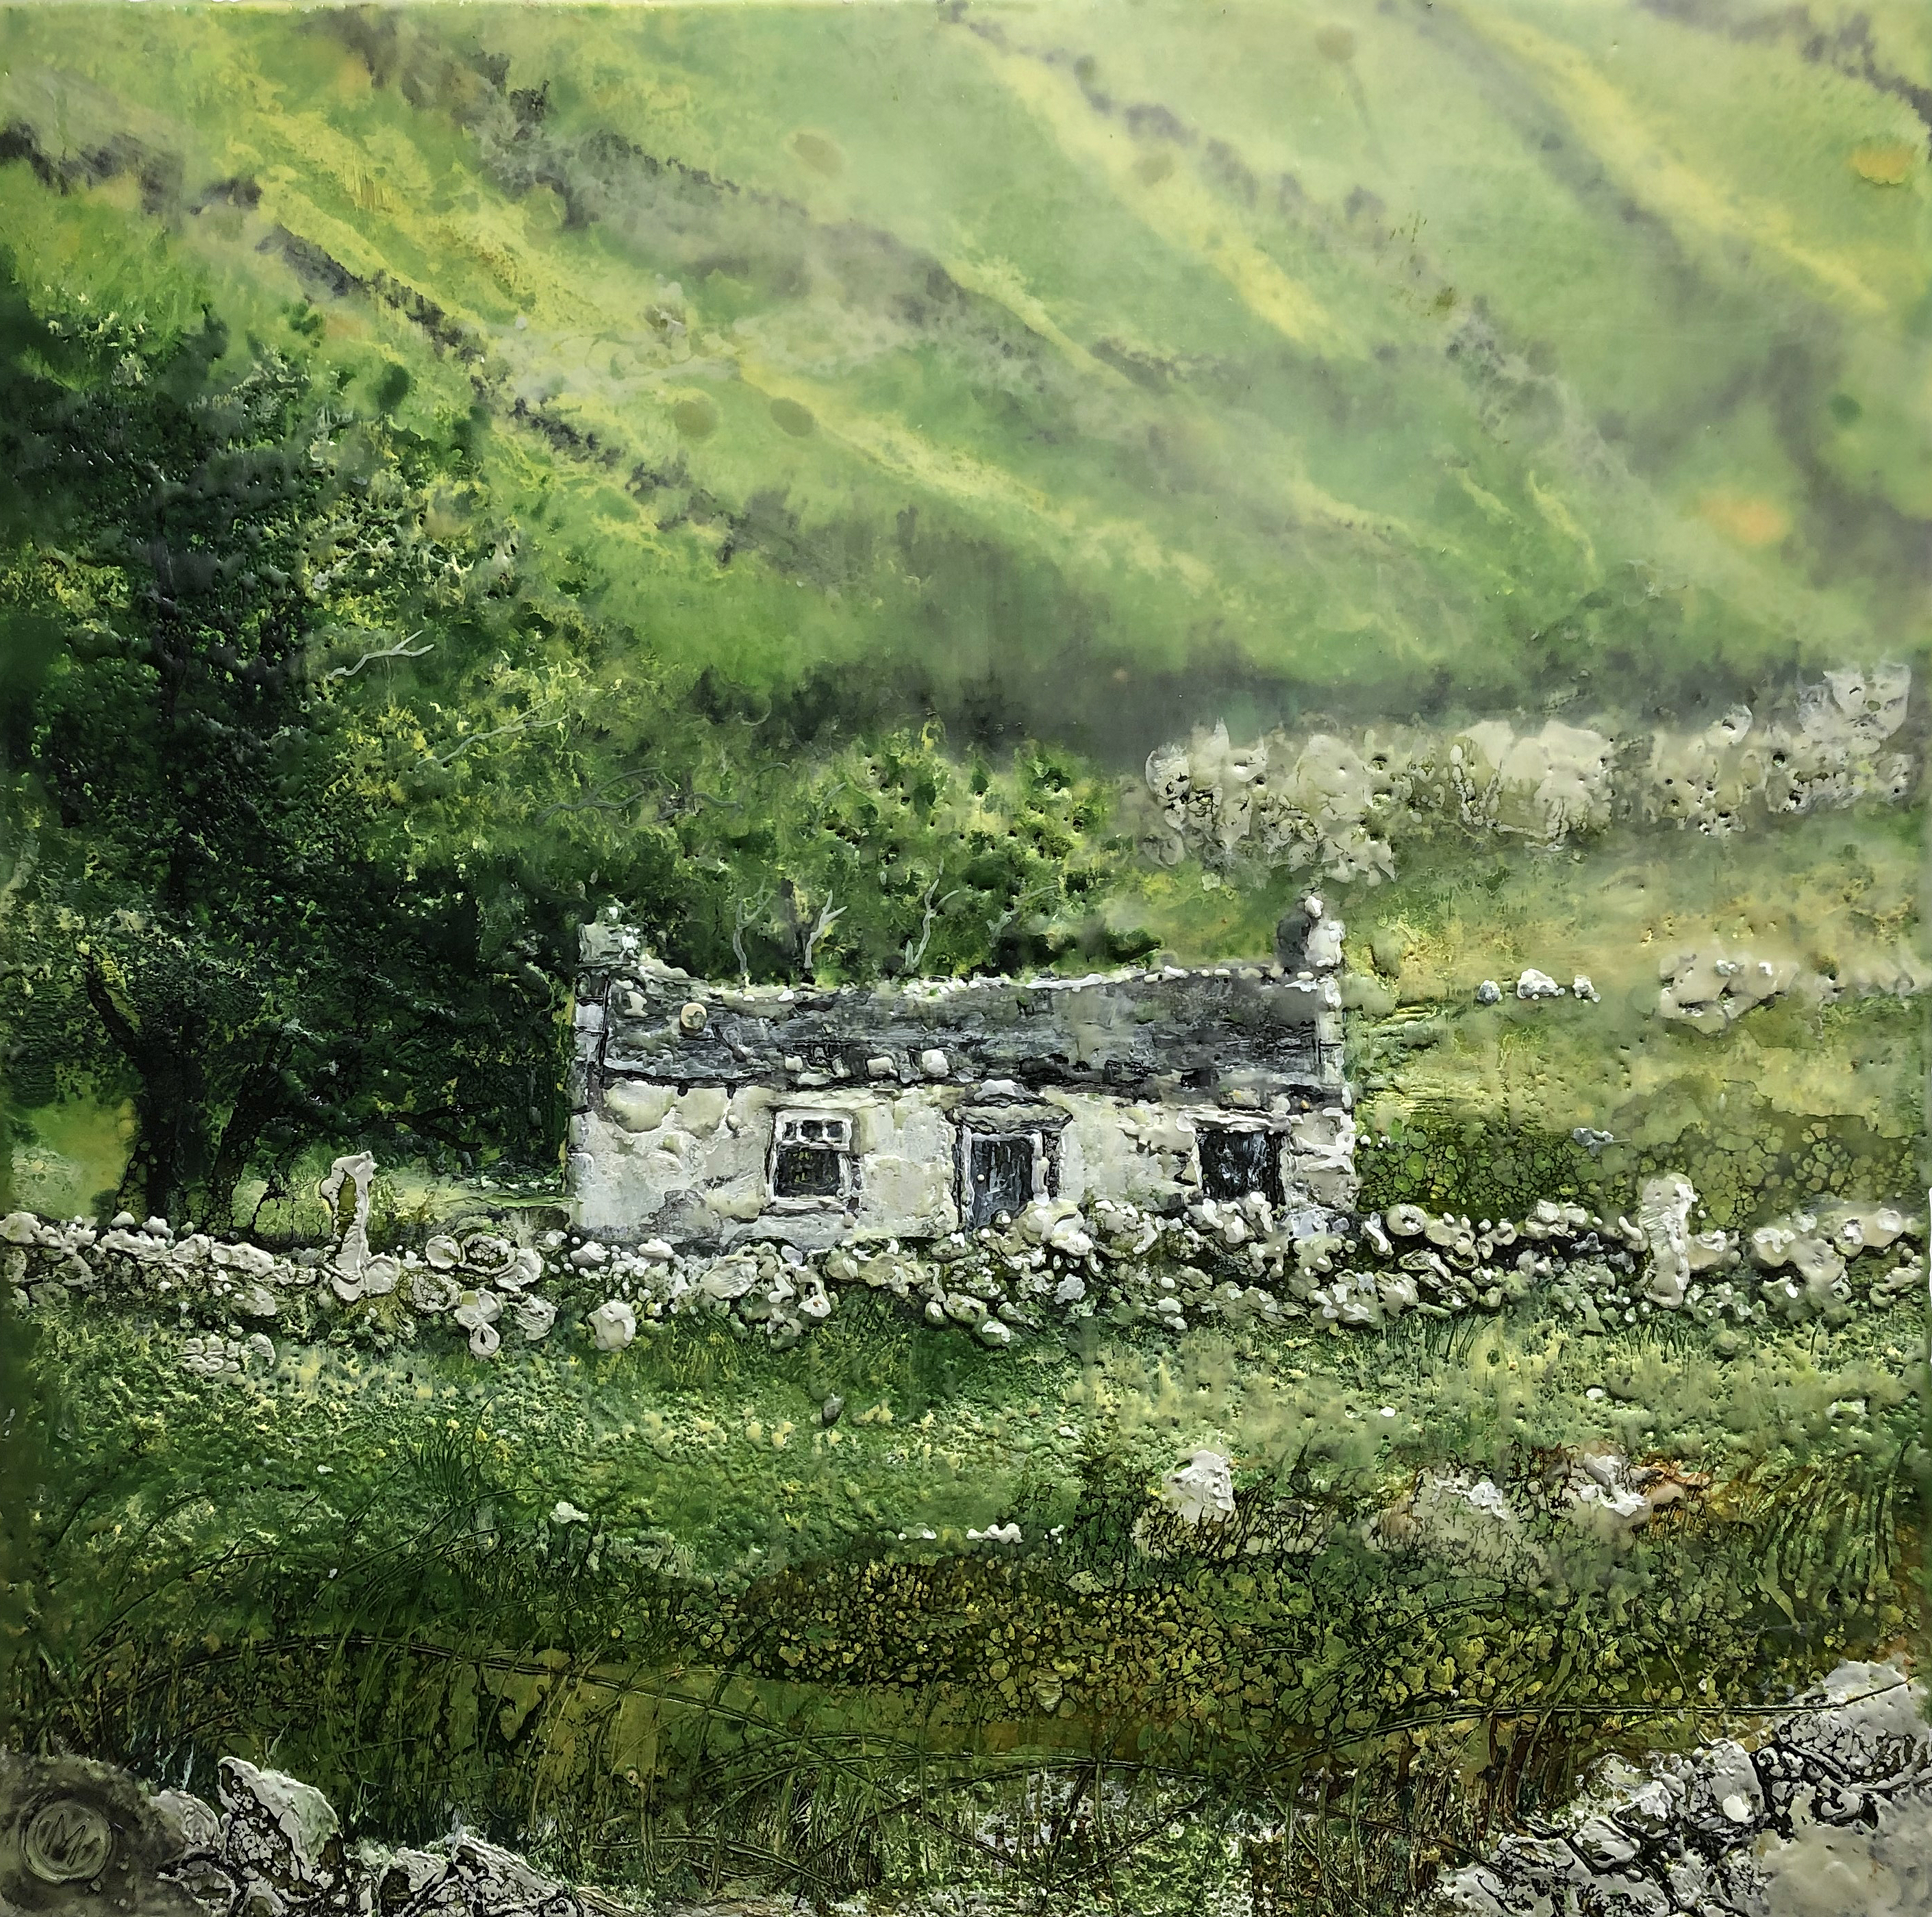 BWTHYN COTTAGE - SOLD